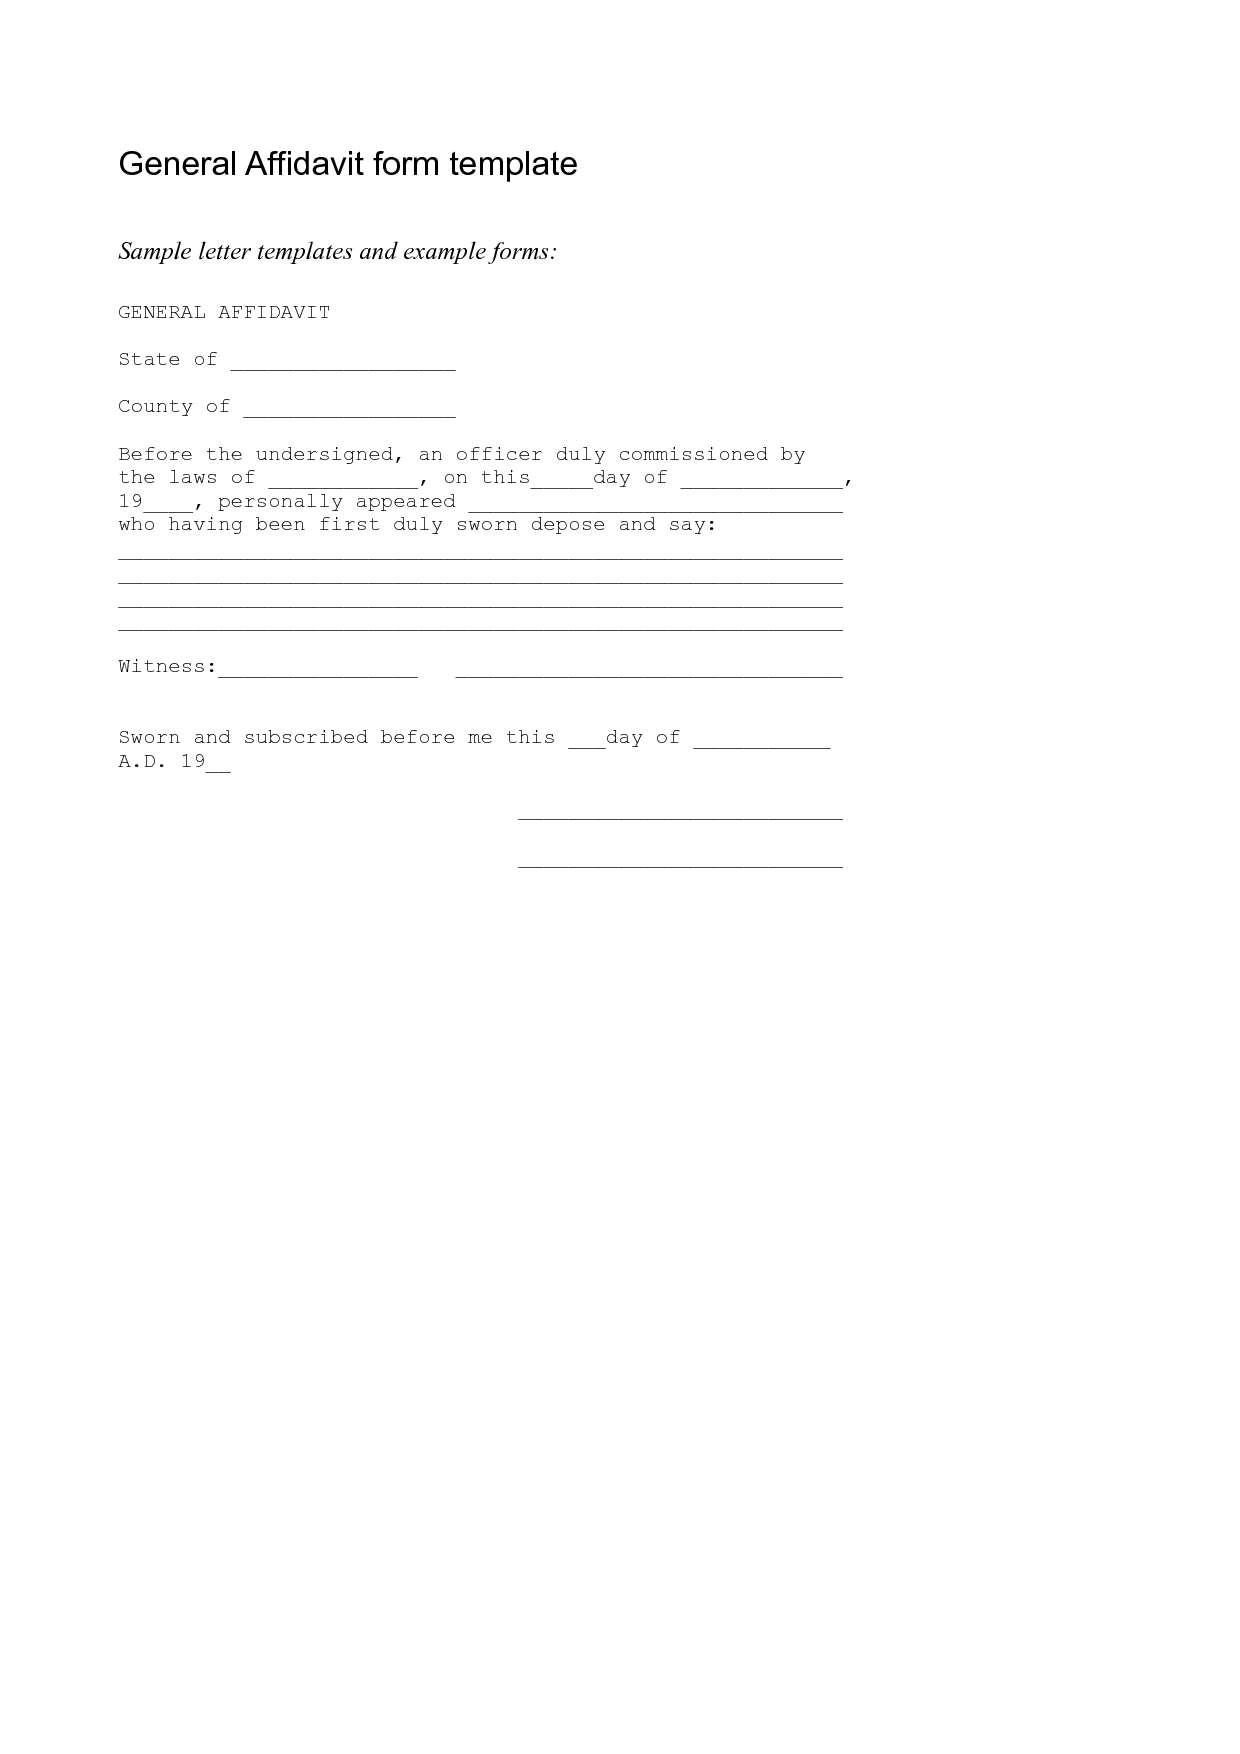 Free Affidavit Form Sample Pdf Word – General Affidavit Example